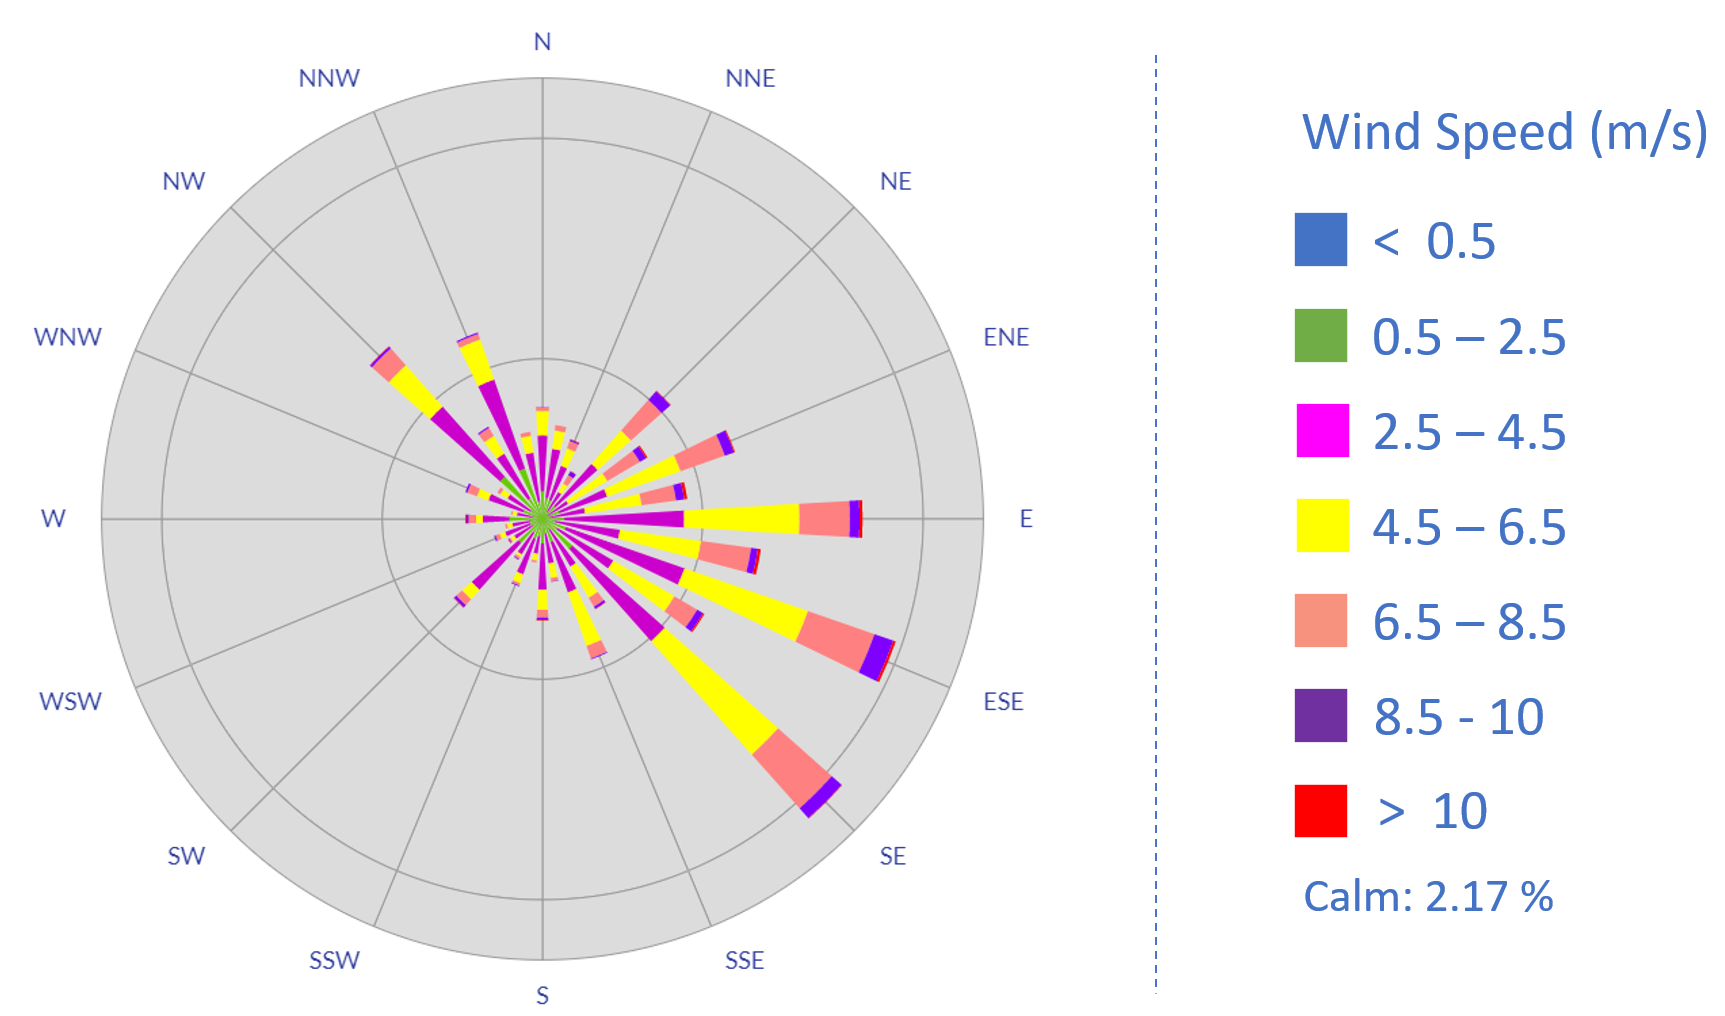 Wind rose diagram for the wind data around Brickell Avenue